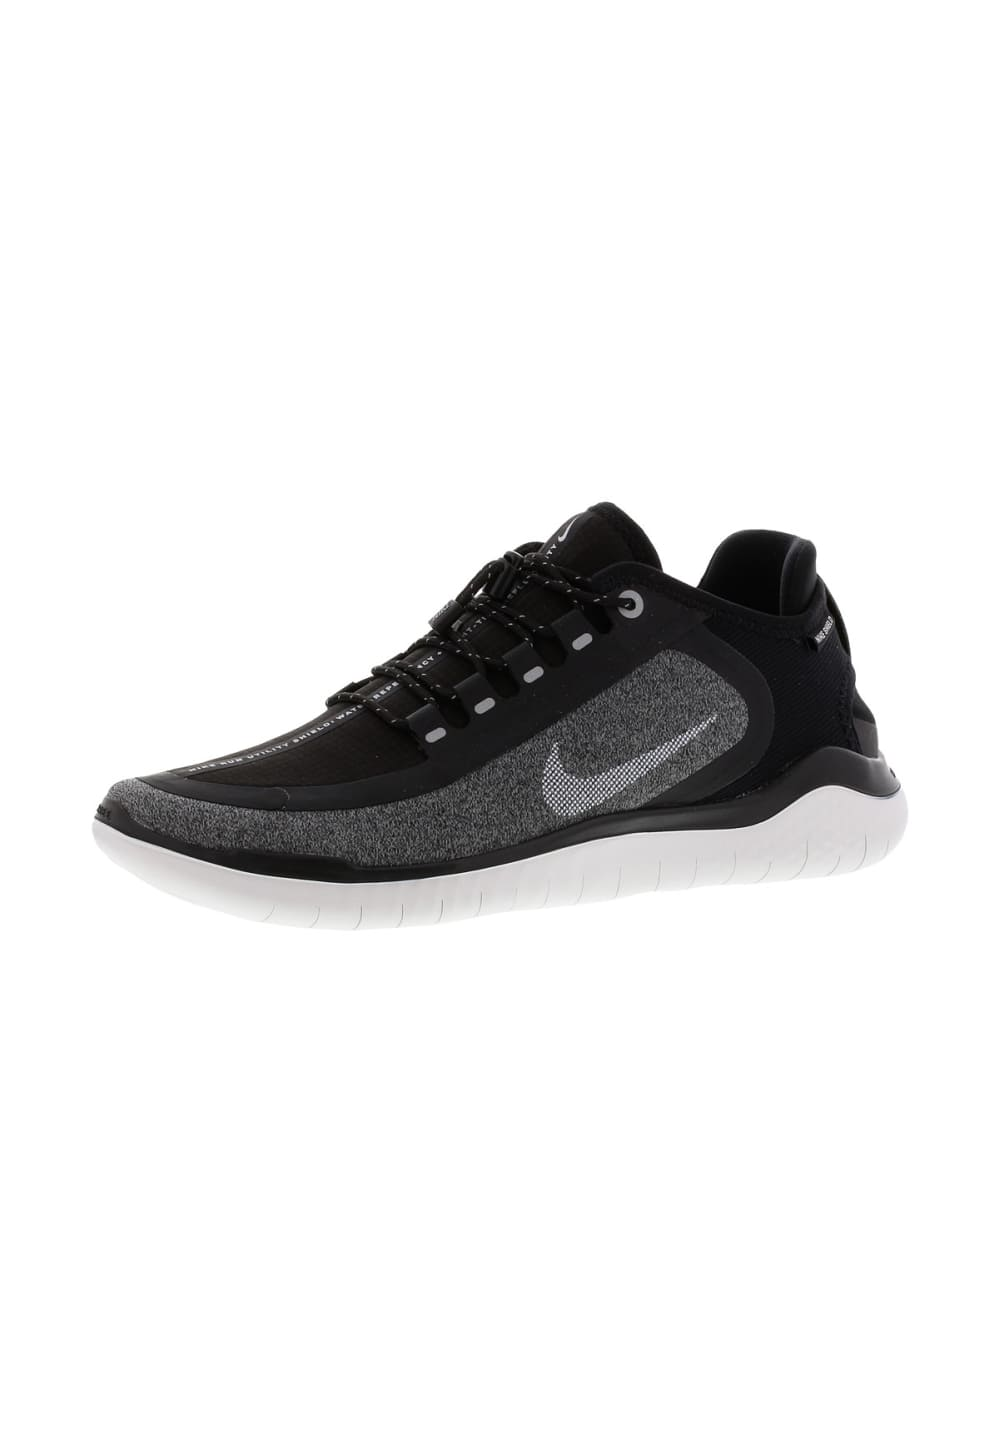 b0add306a35eb Nike Free Rn 2018 Shield - Running shoes for Women - Black